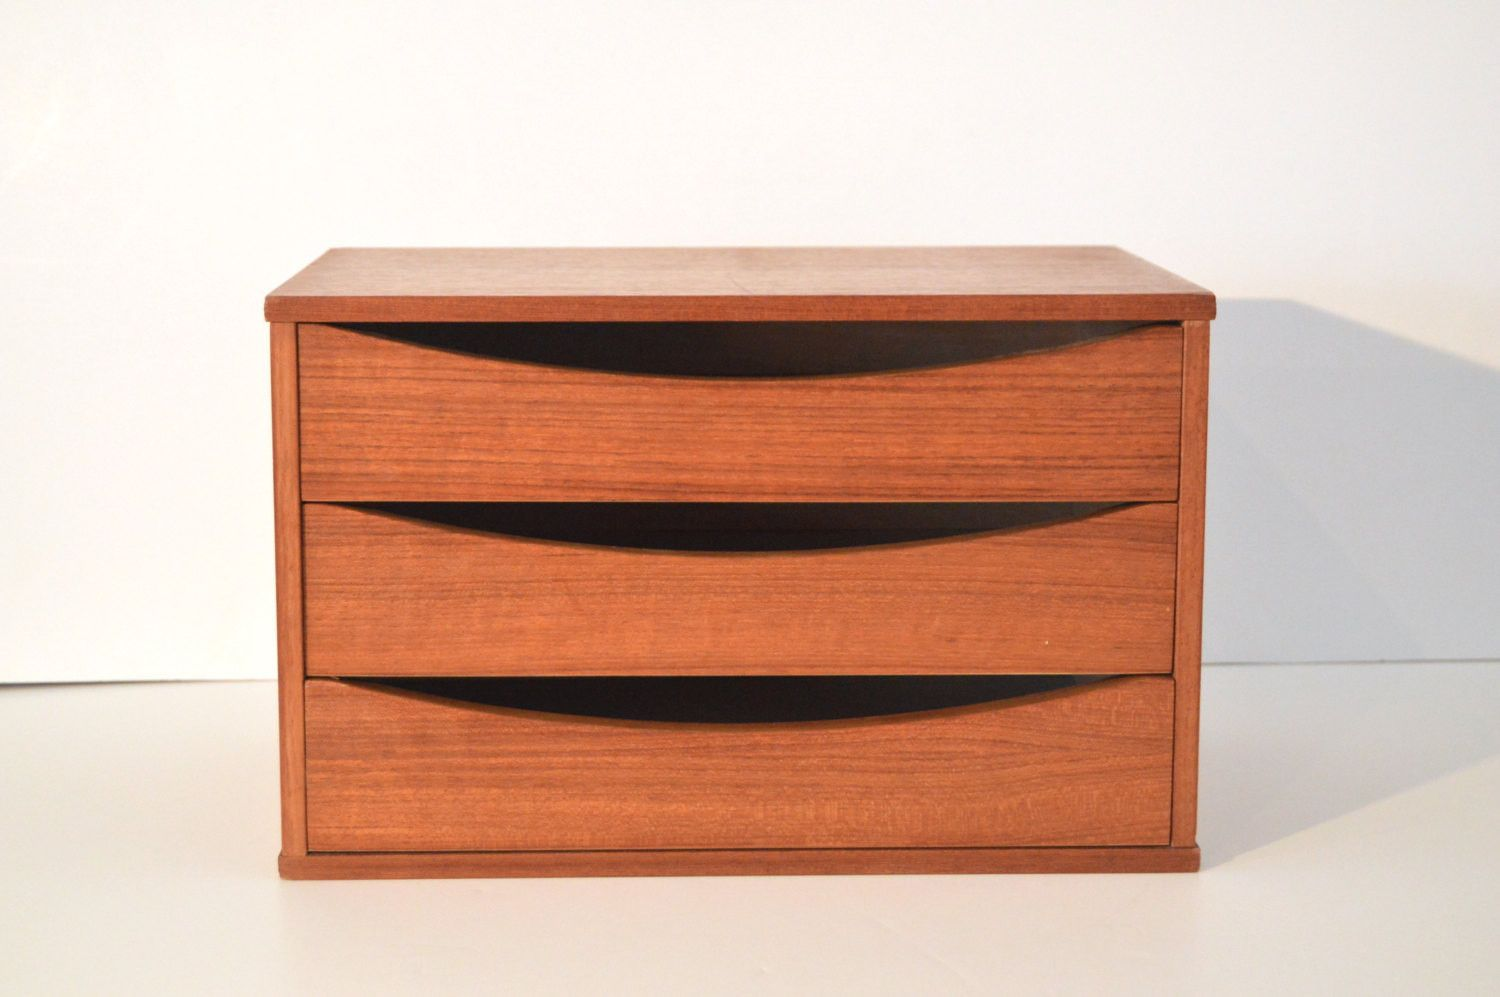 Danish Modern Teak Jewelry Box Mid Century Modern Jewelry Box with